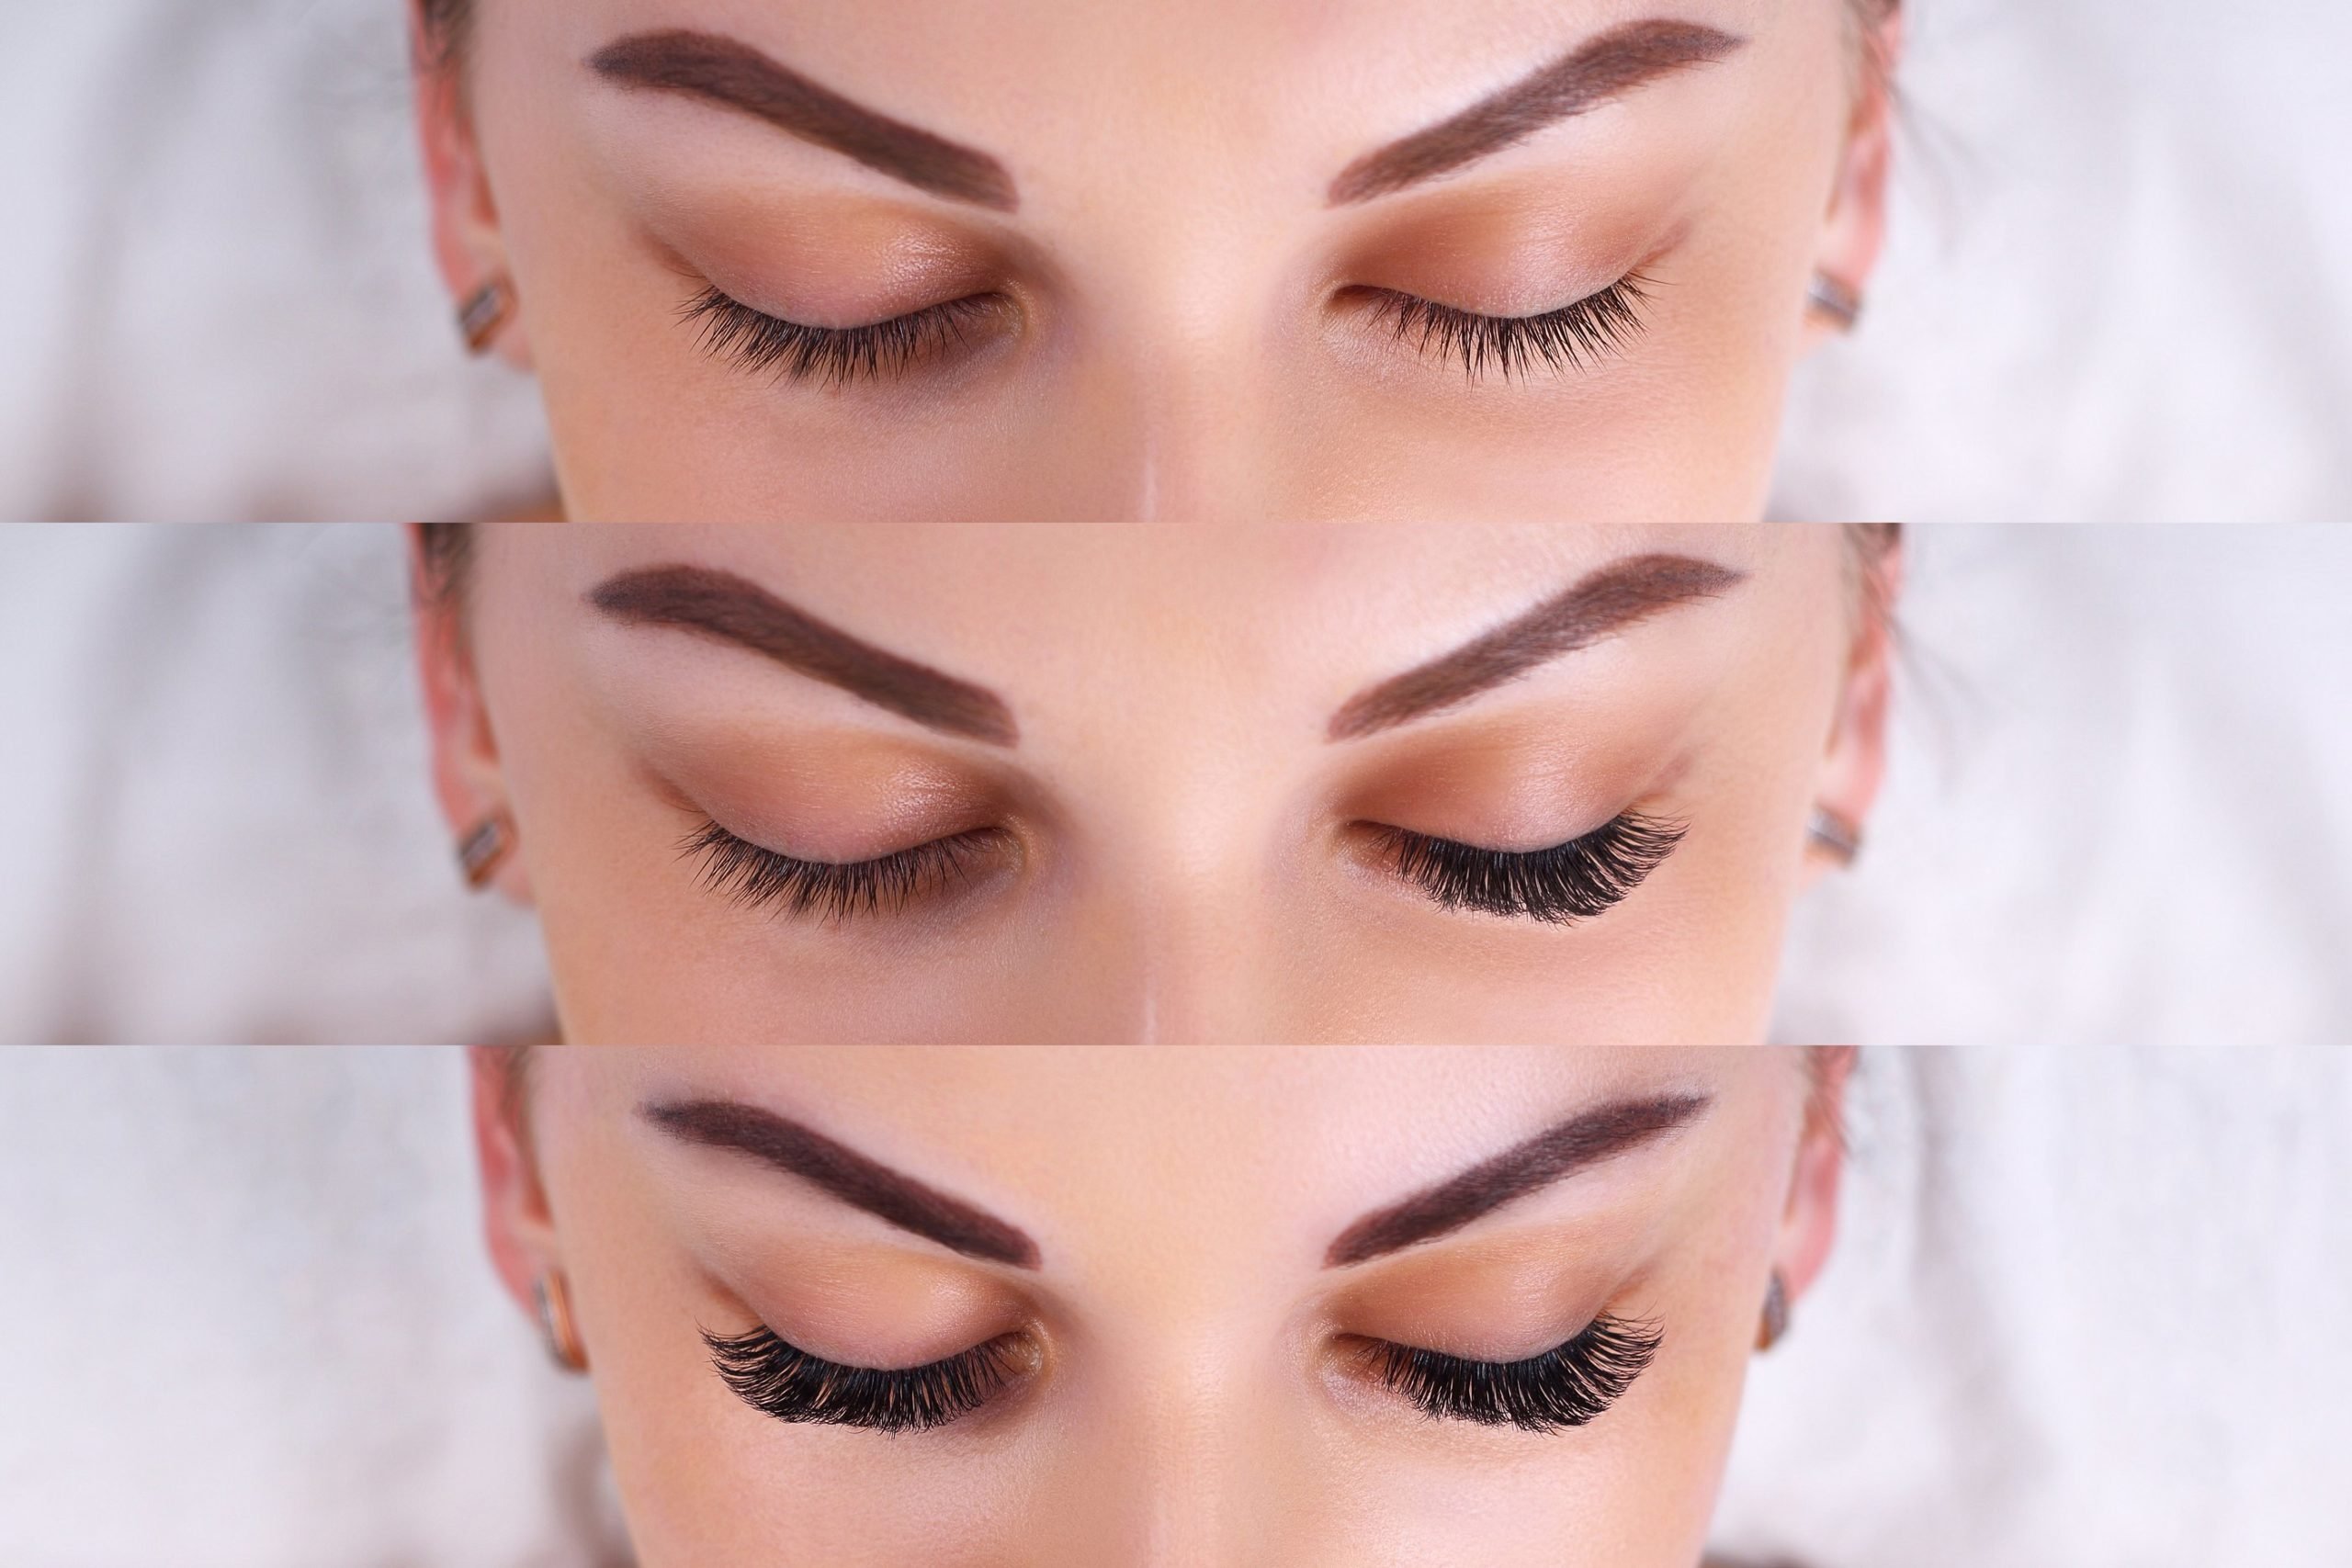 How To Apply False Lashes: 5 Easy Steps